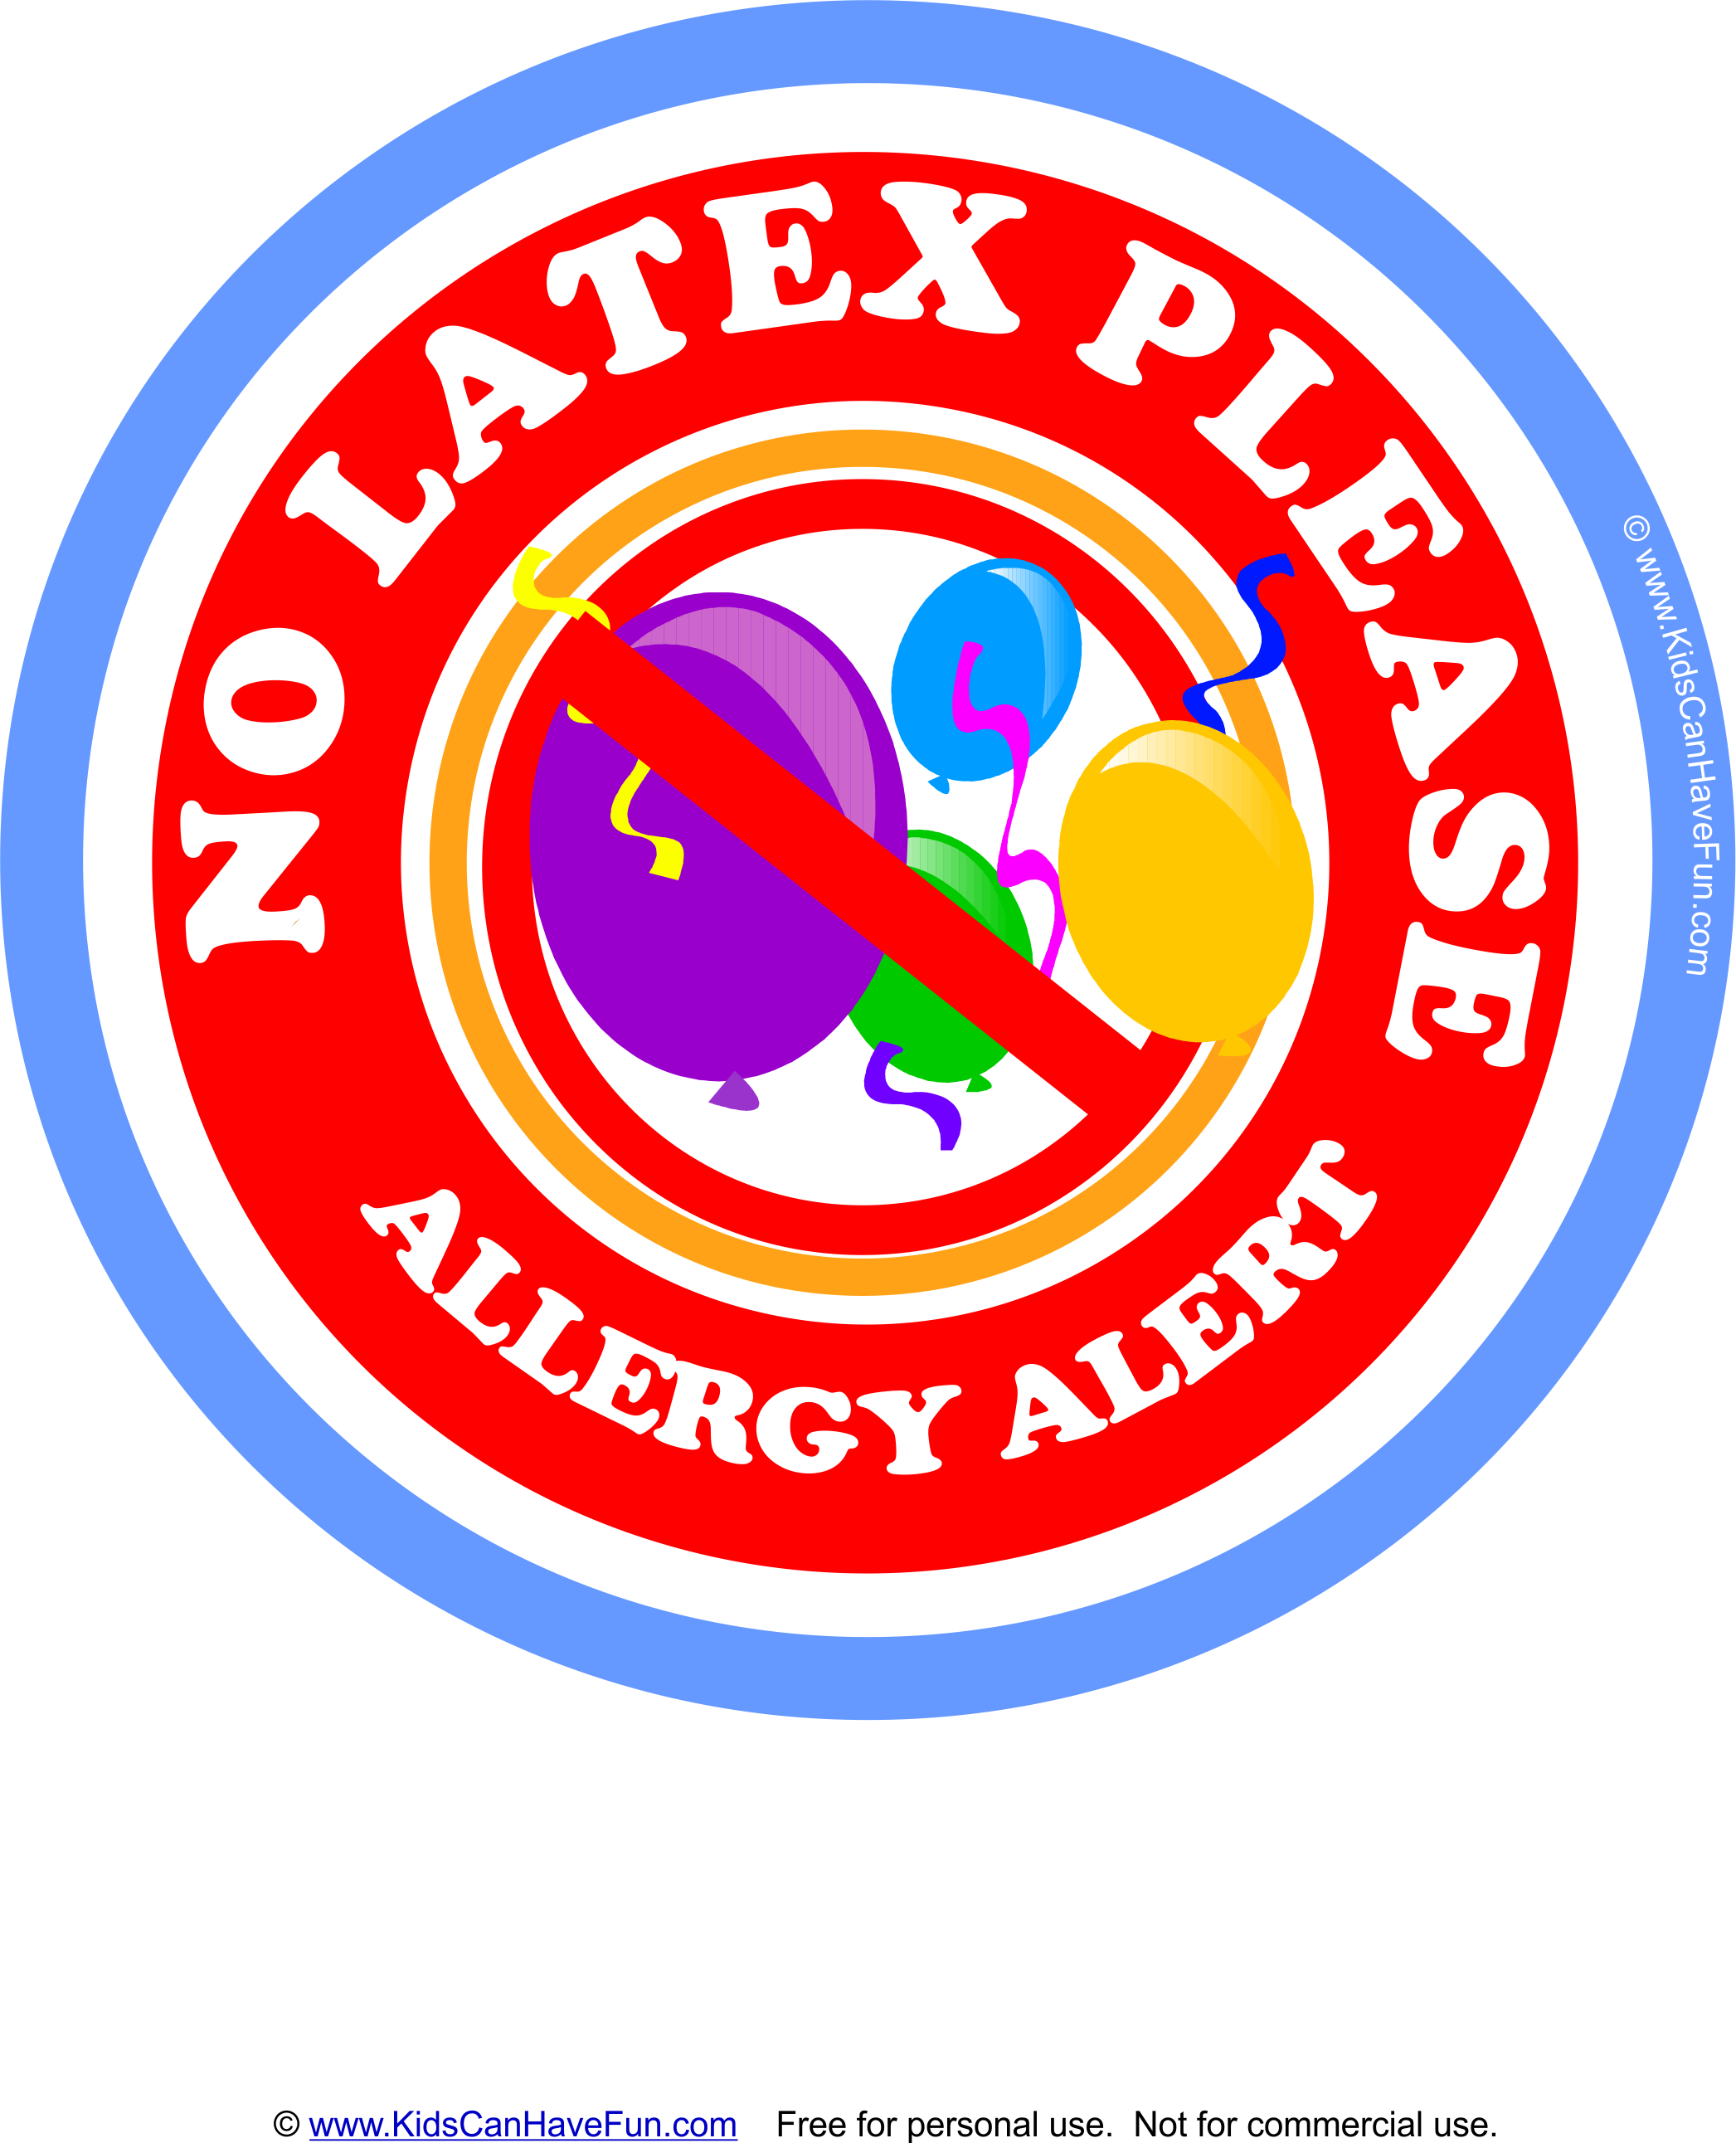 No Latex Please with Balloons Allergy Alert #latexallergy #allergies  #allergylabels